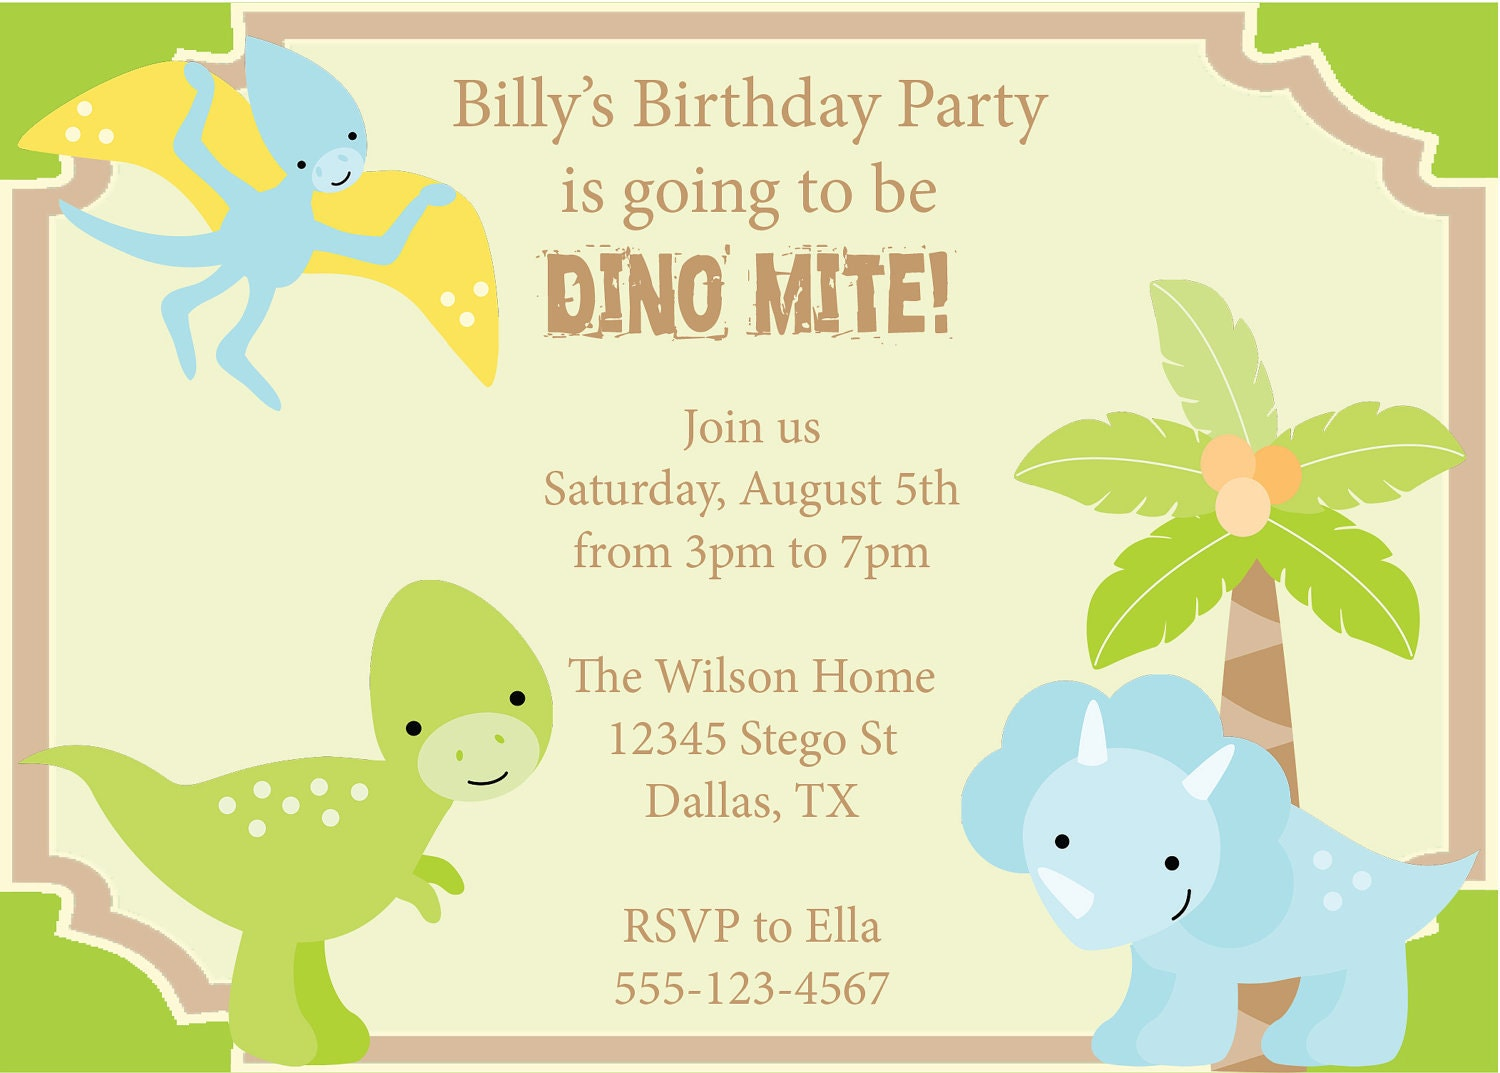 Birthday Party Invitation Wording For Adults with good invitations layout